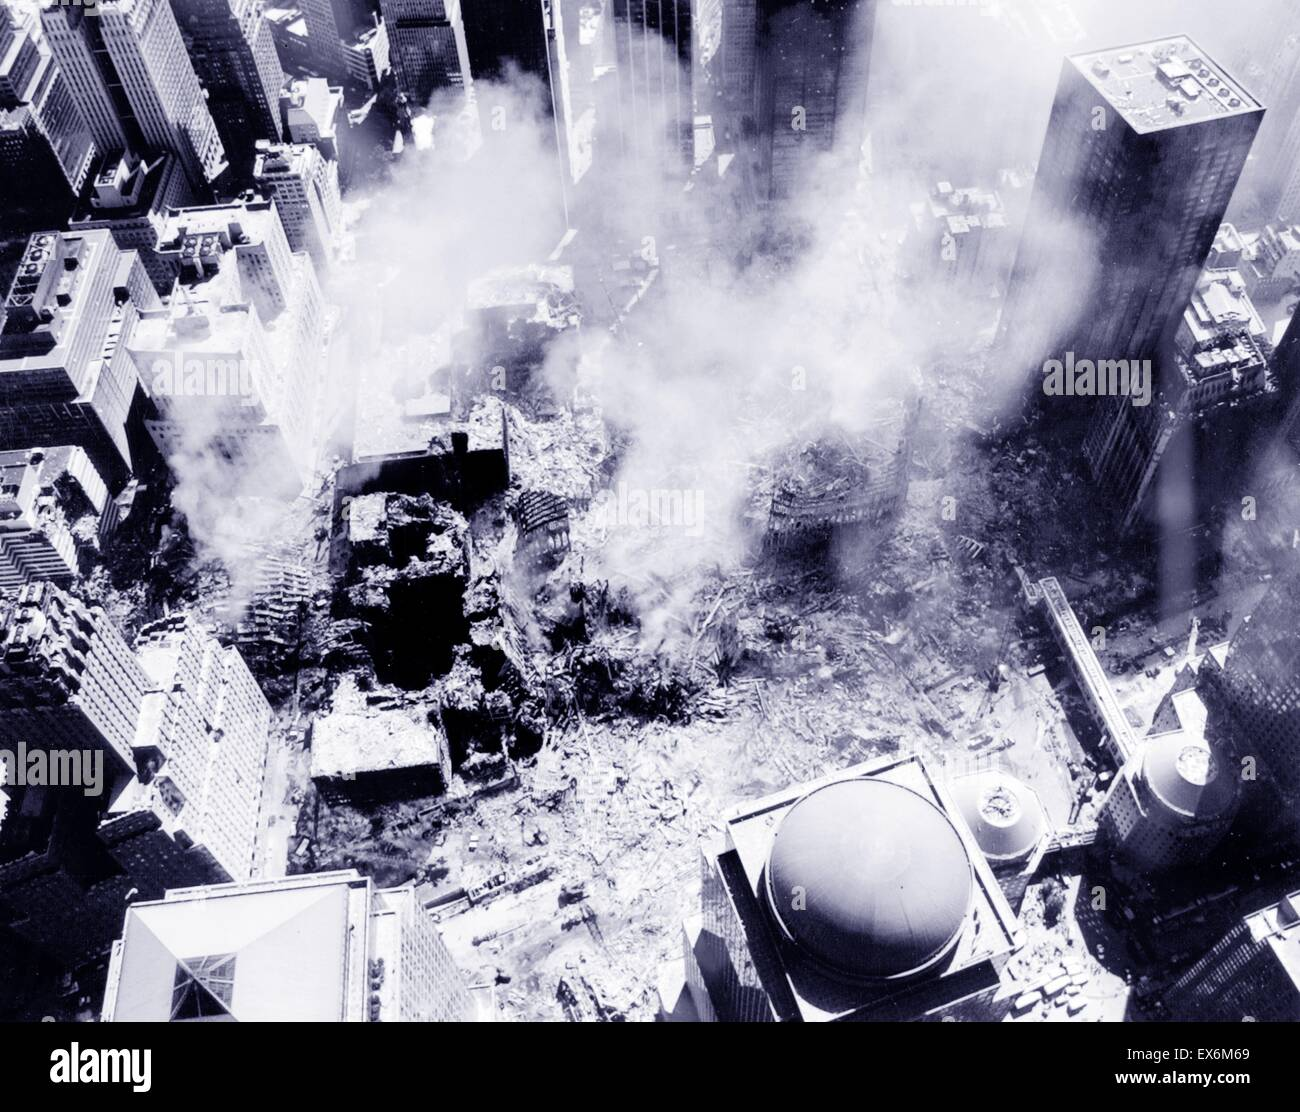 Photograph of an aerial view after the 9/11 attacks on the World Trade Centre Site in New York. Dated 2001 - Stock Image